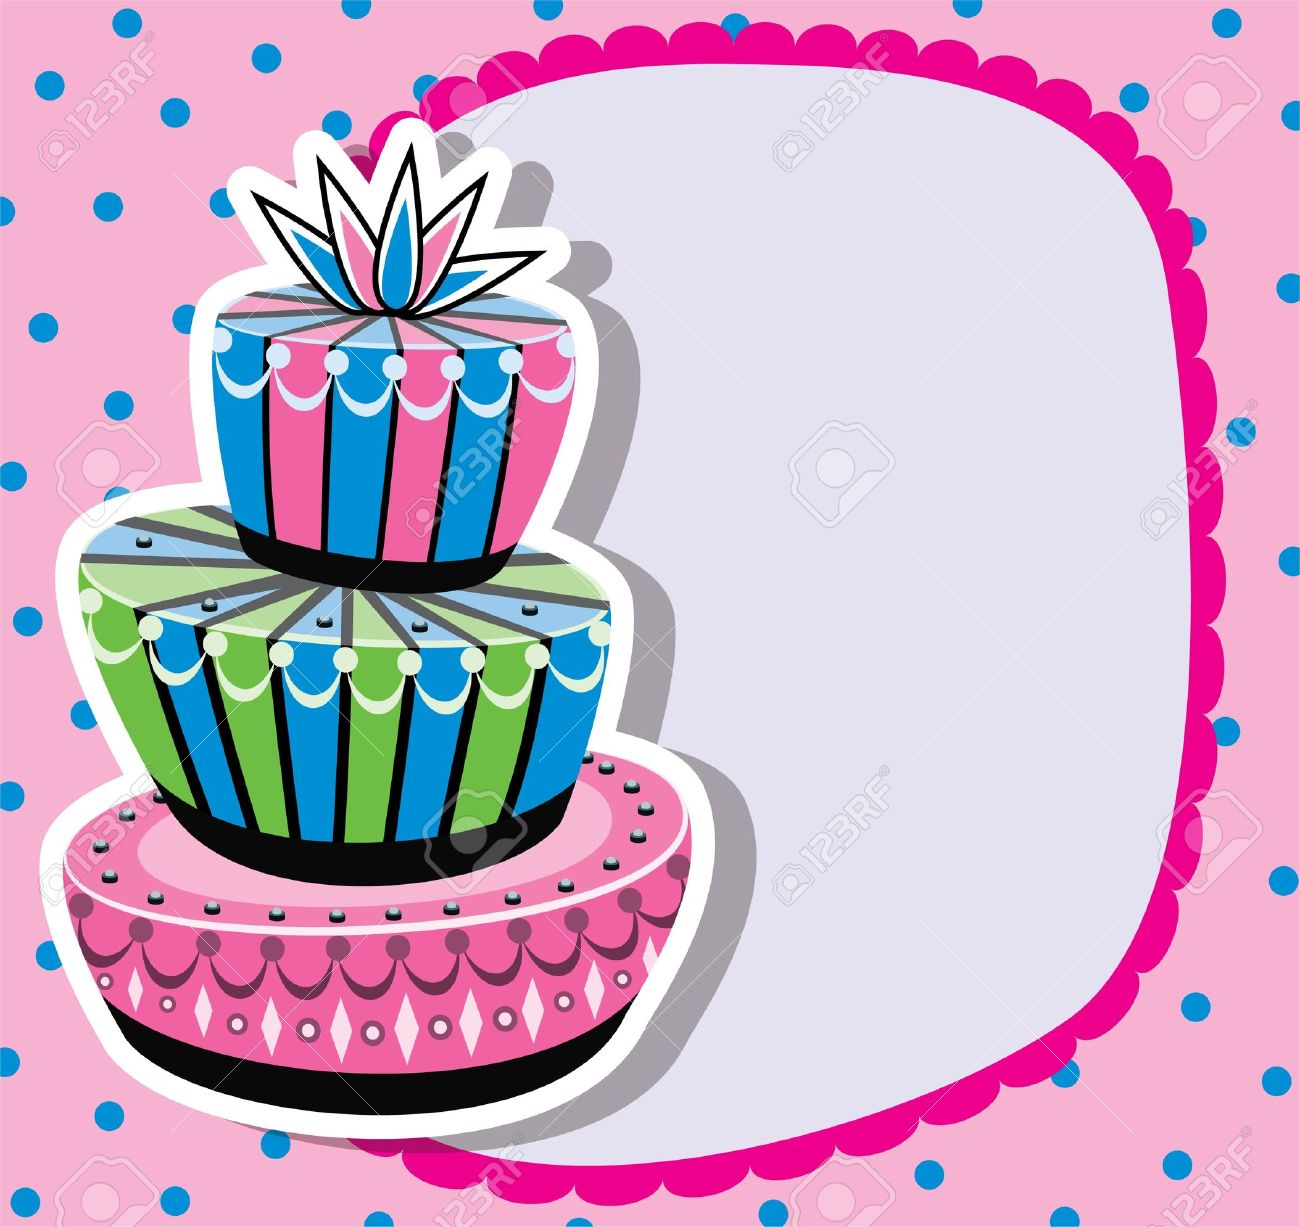 Card With Birthday Cake And Copyspace Royalty Free Cliparts – Birthday Cards Borders